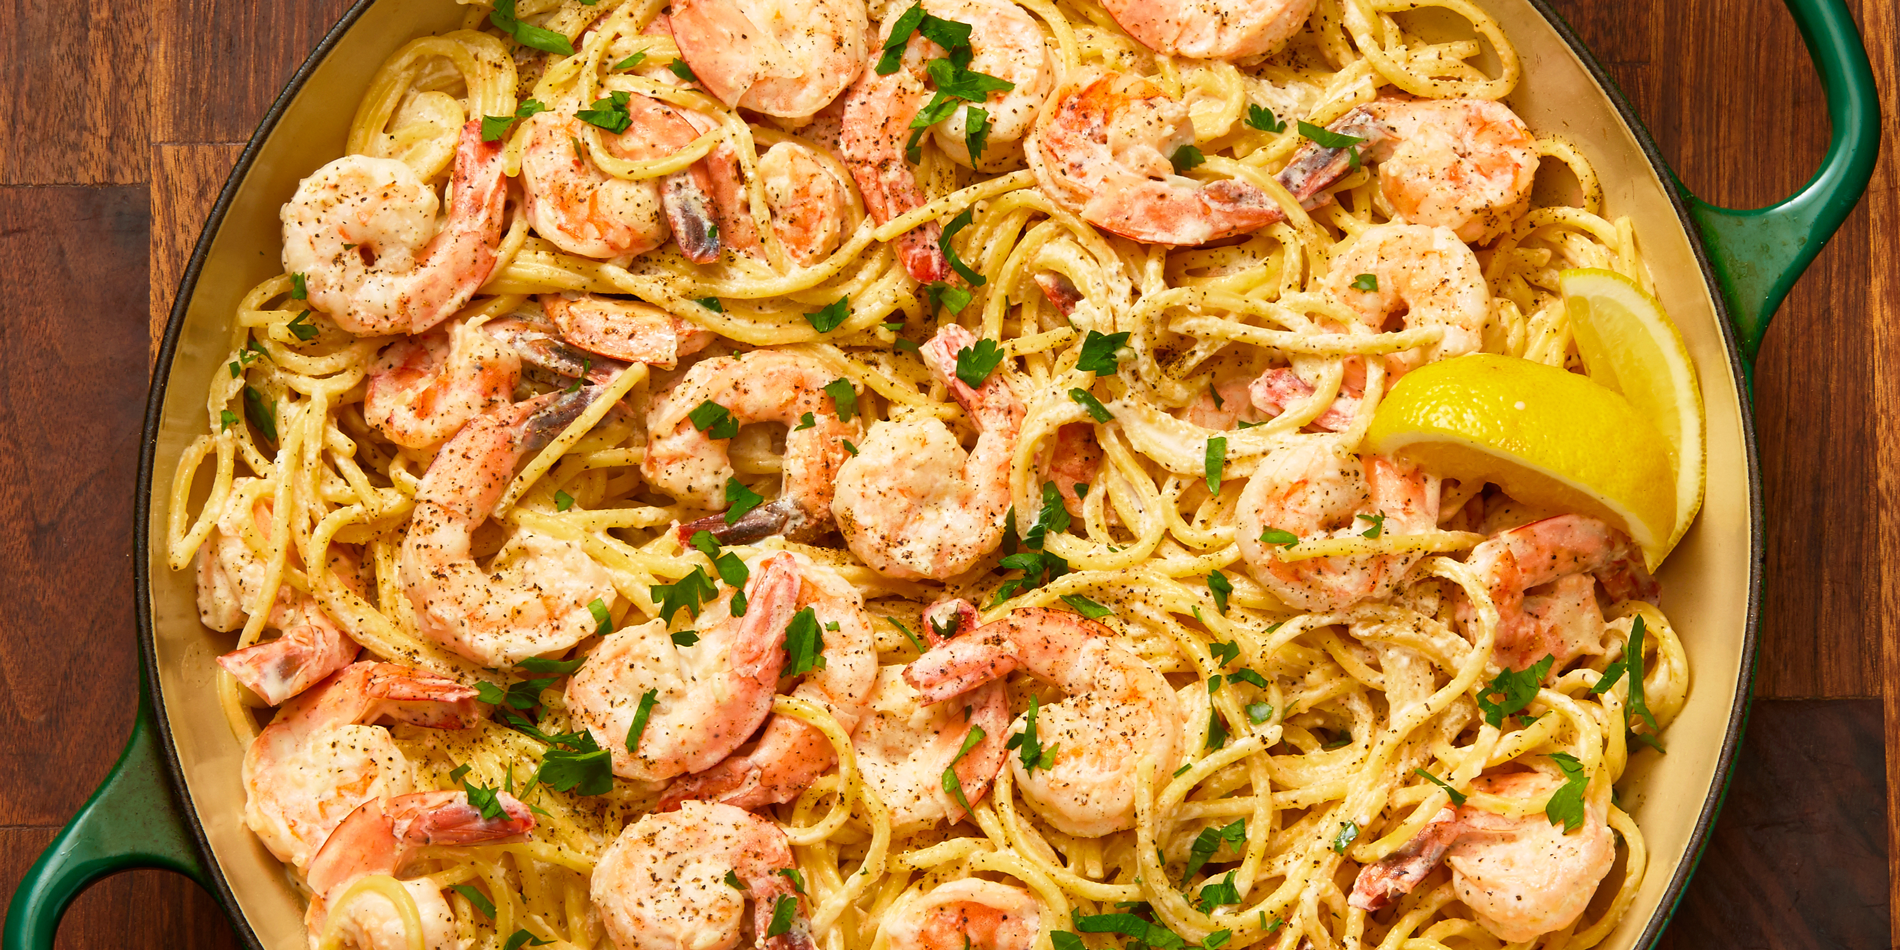 Image result for Creamy Lemon Pepper Shrimp Spaghetti by delish